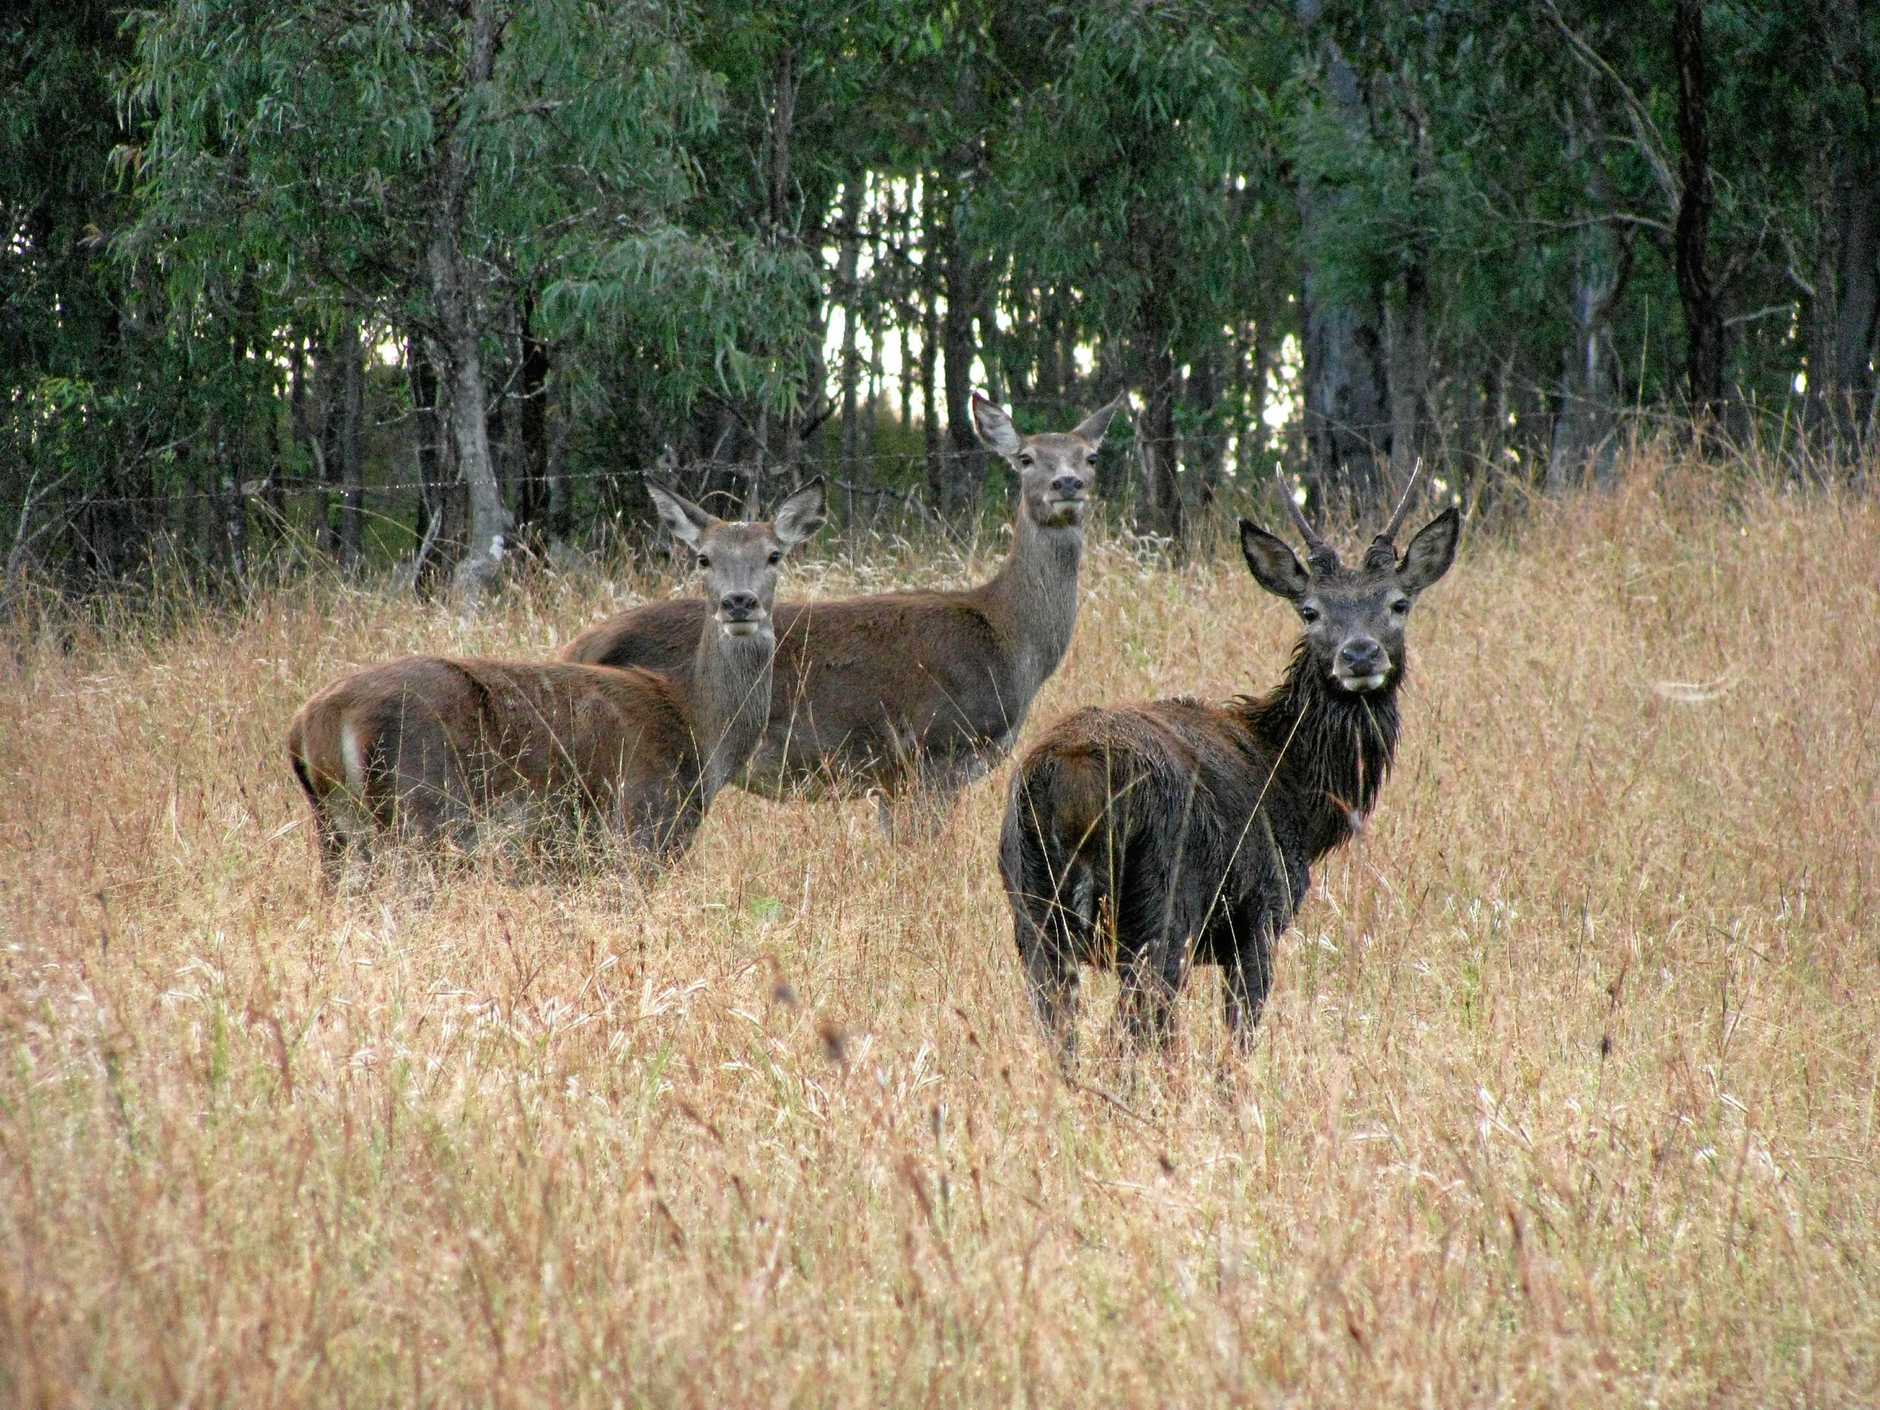 WILD DEER: Once a rare sight, Sam Ricca said the wild deer had proliferated and were destroying crops in the Ballandean region.